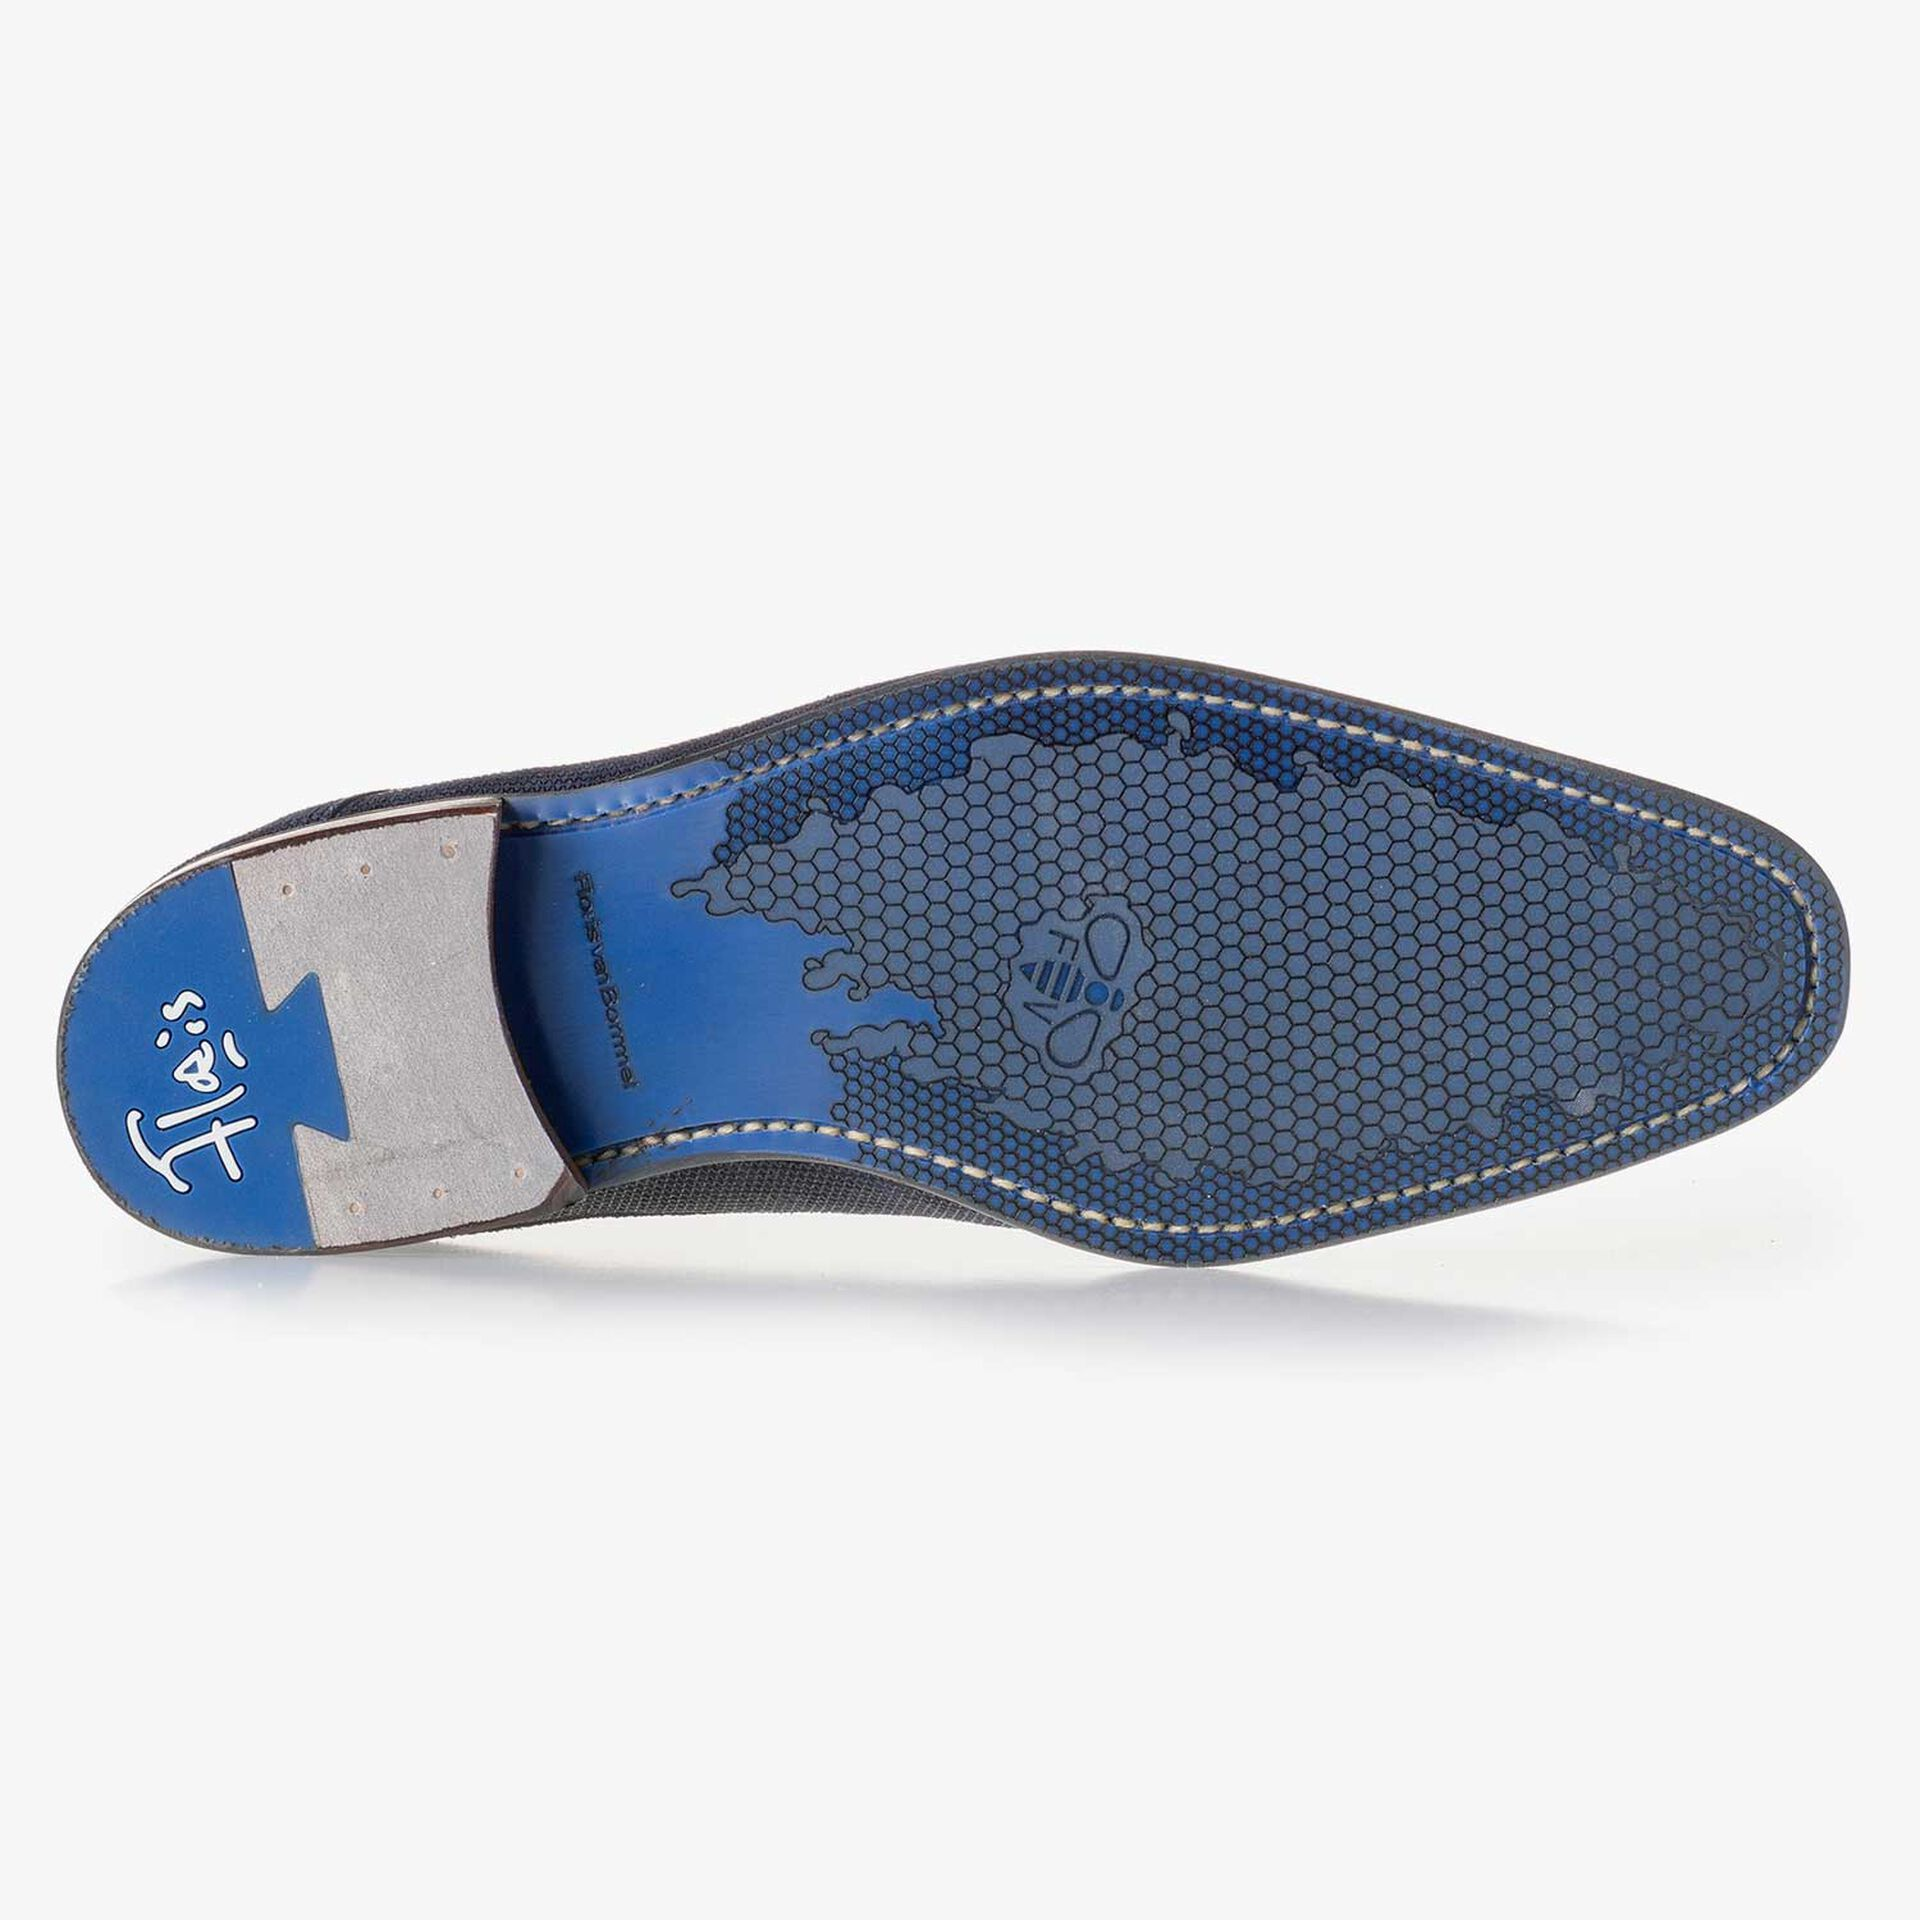 Blue, patterned suede leather lace shoe